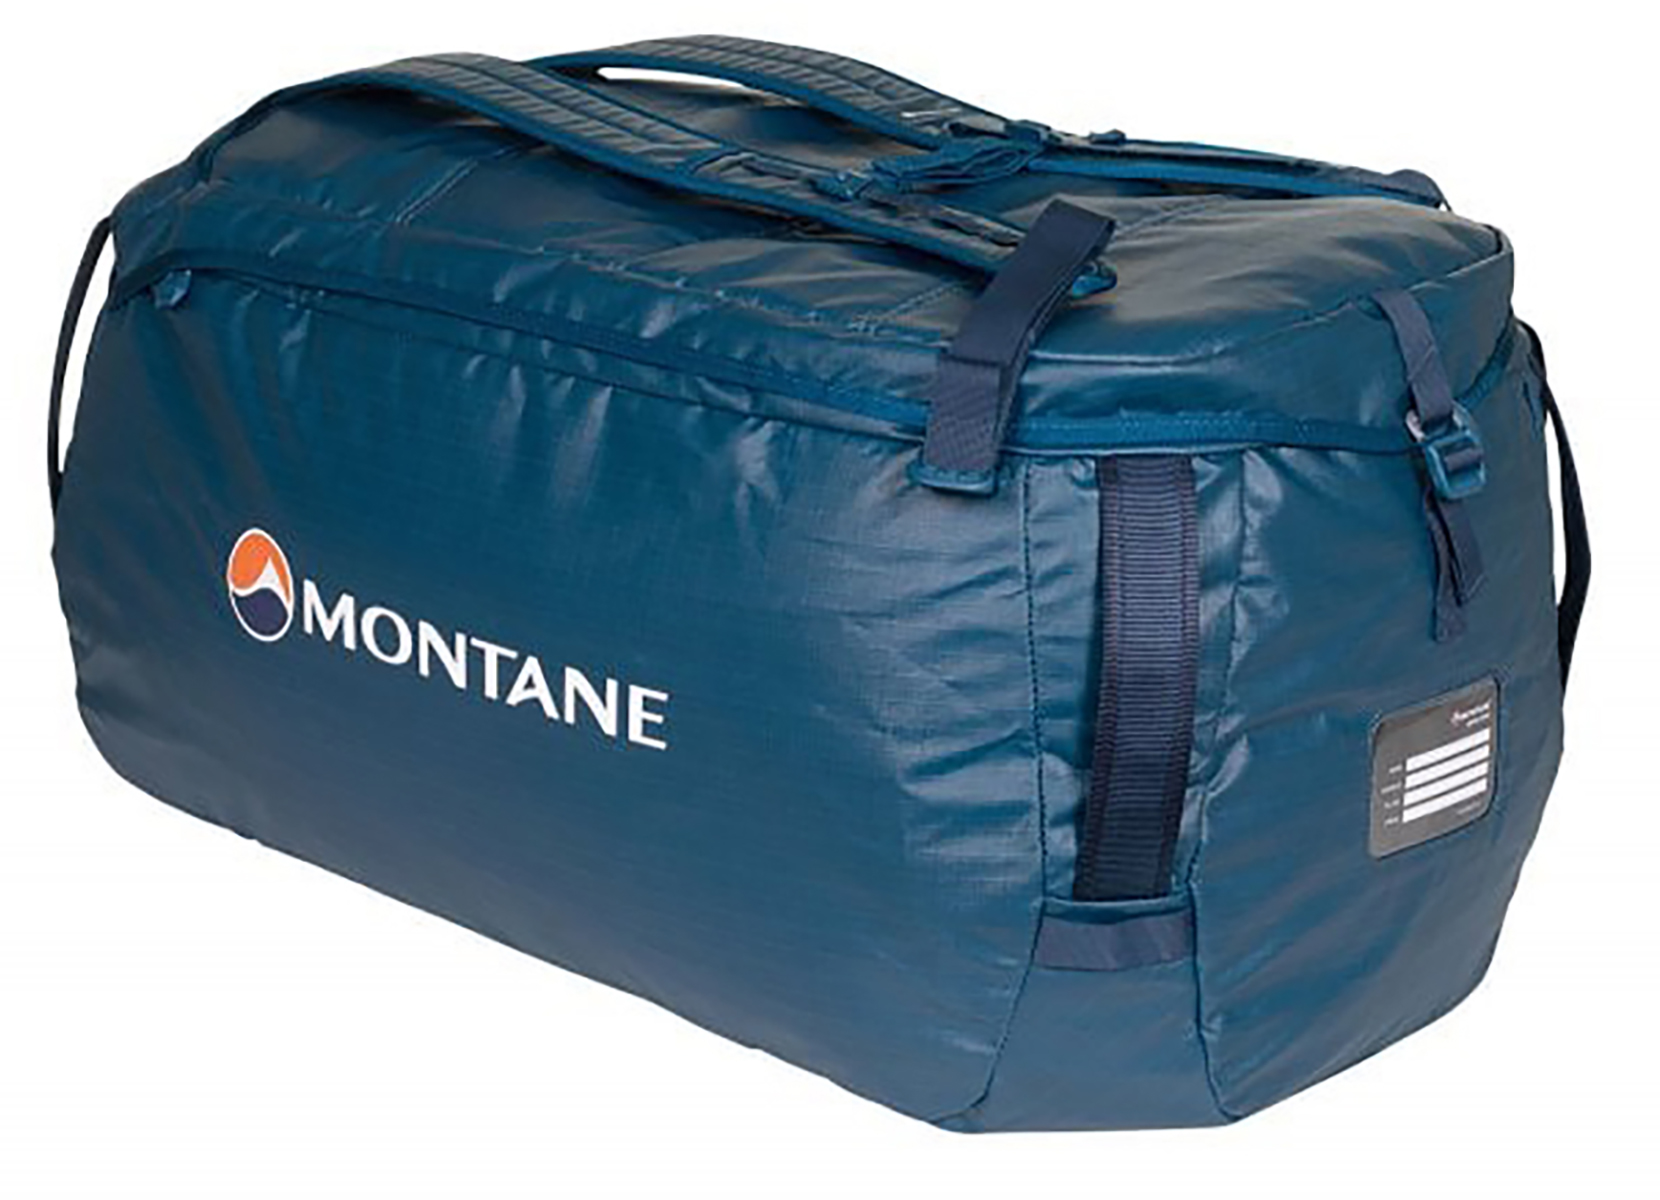 Montane Transition 40 Duffle Bag | Travel bags